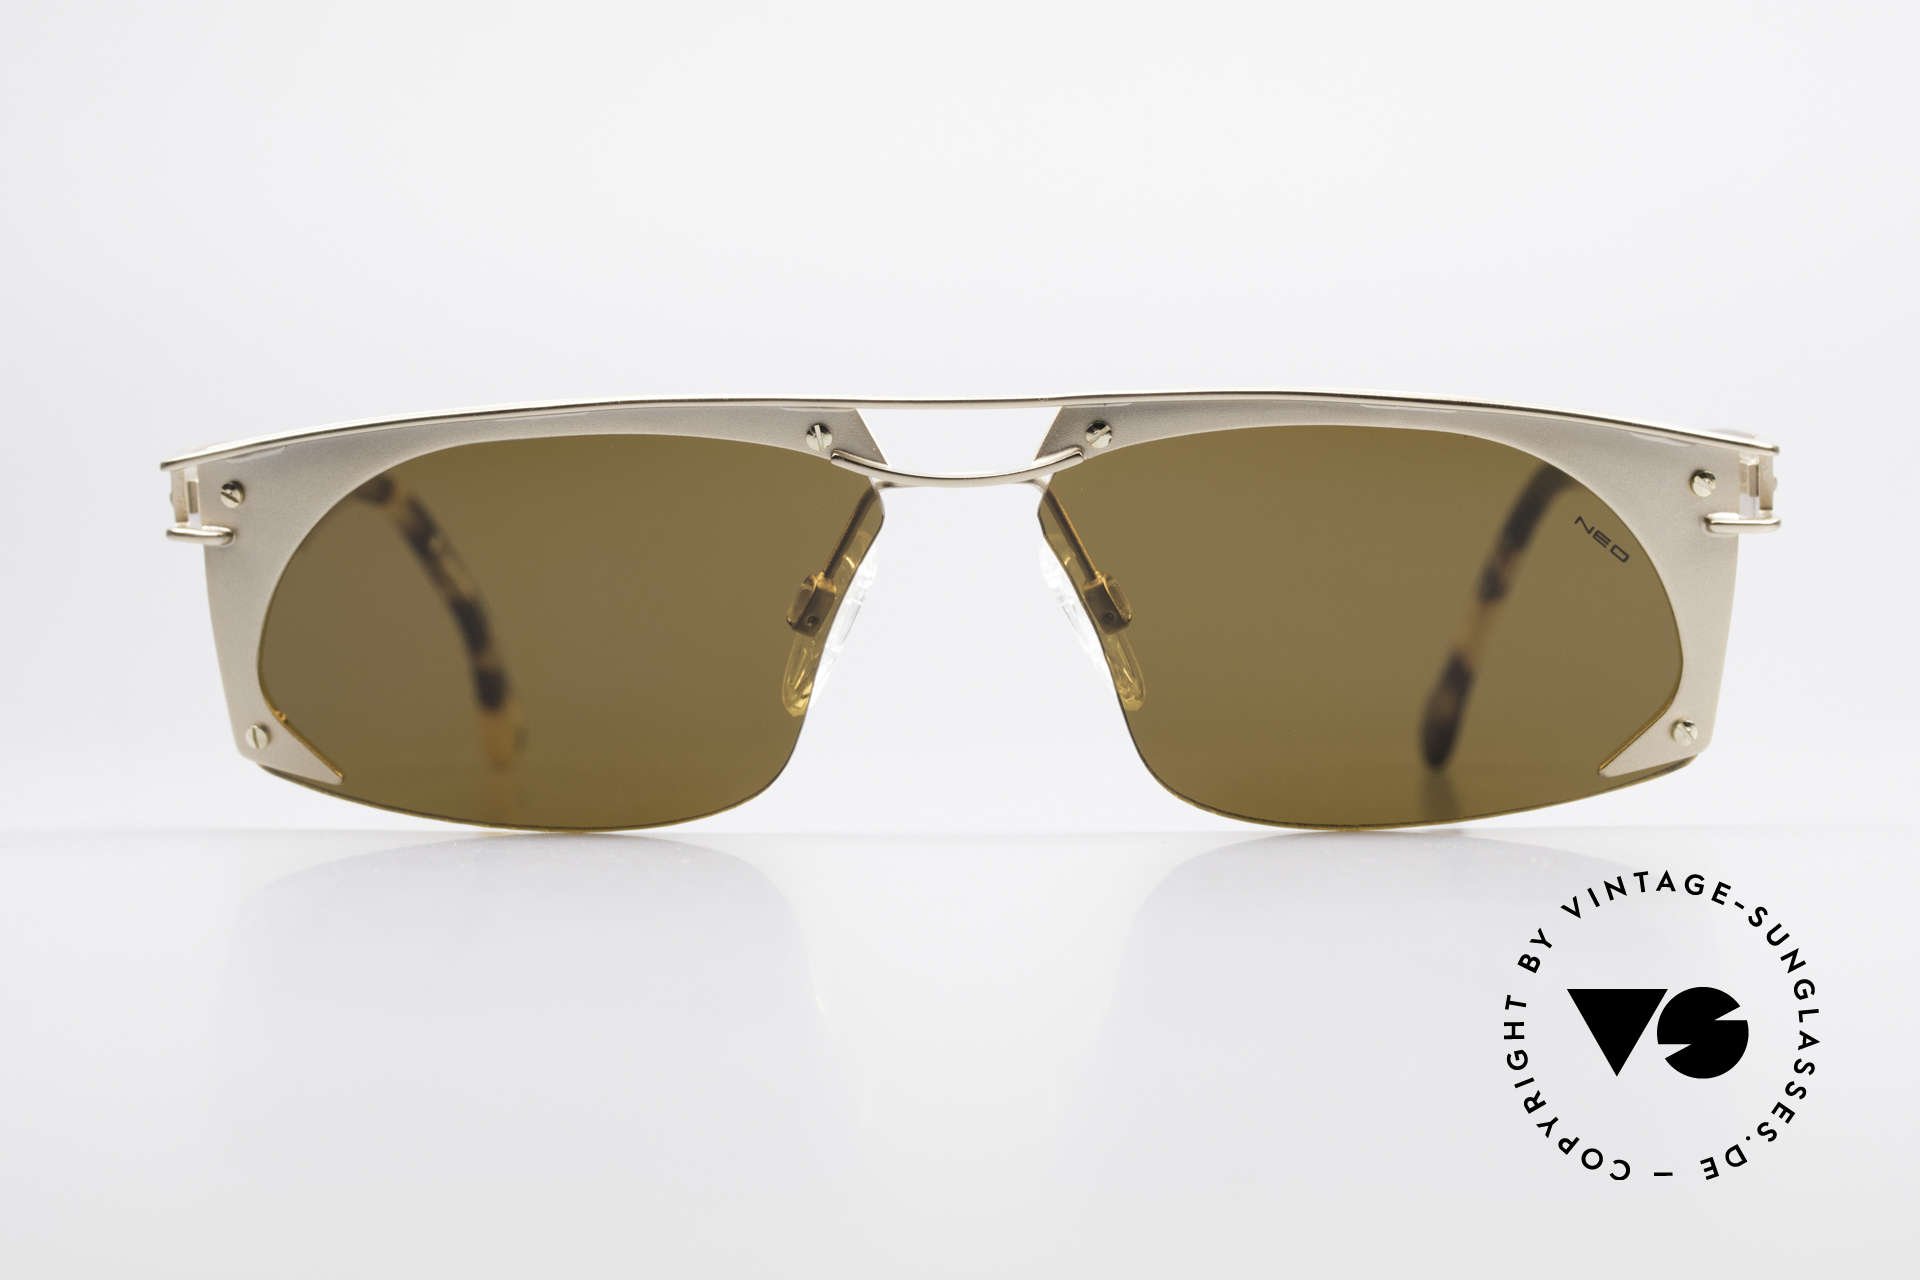 Neostyle Holiday 968 Vintage Steampunk Sunglasses, spectacular frame construction (Industrial Style), Made for Men